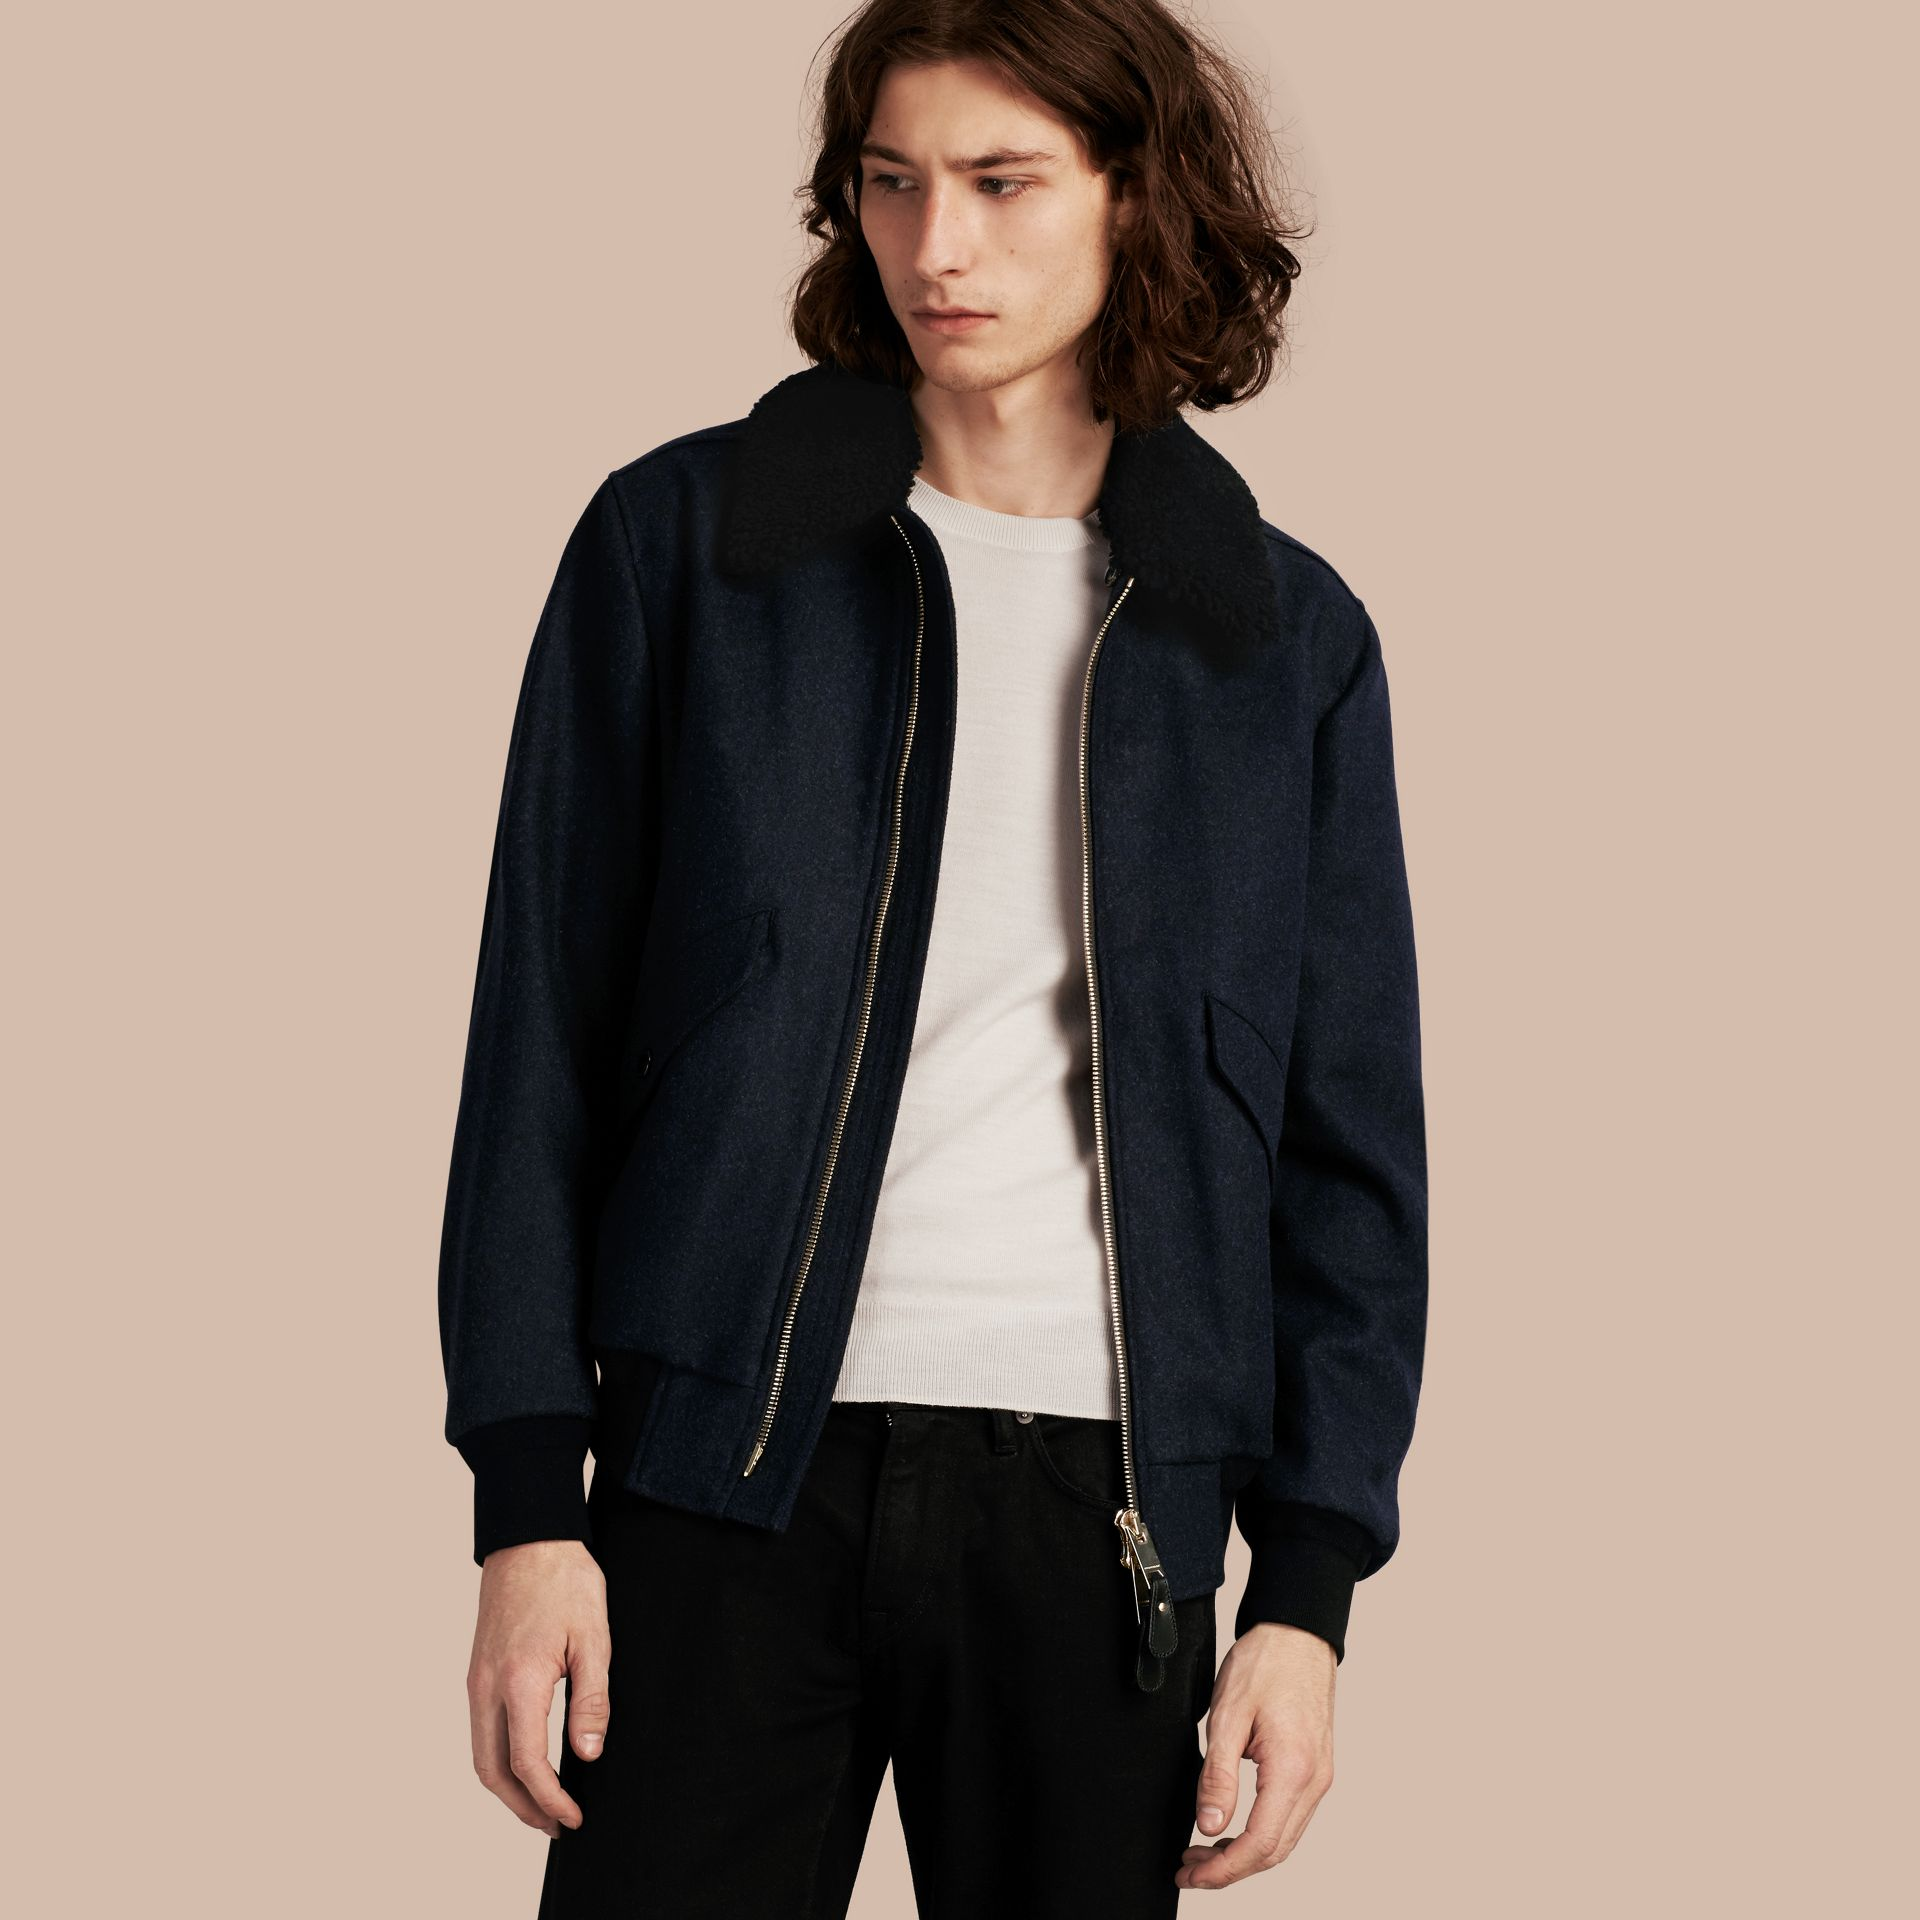 Navy melange Lightweight Wool Bomber Jacket with Detachable Shearling Top Collar - gallery image 1